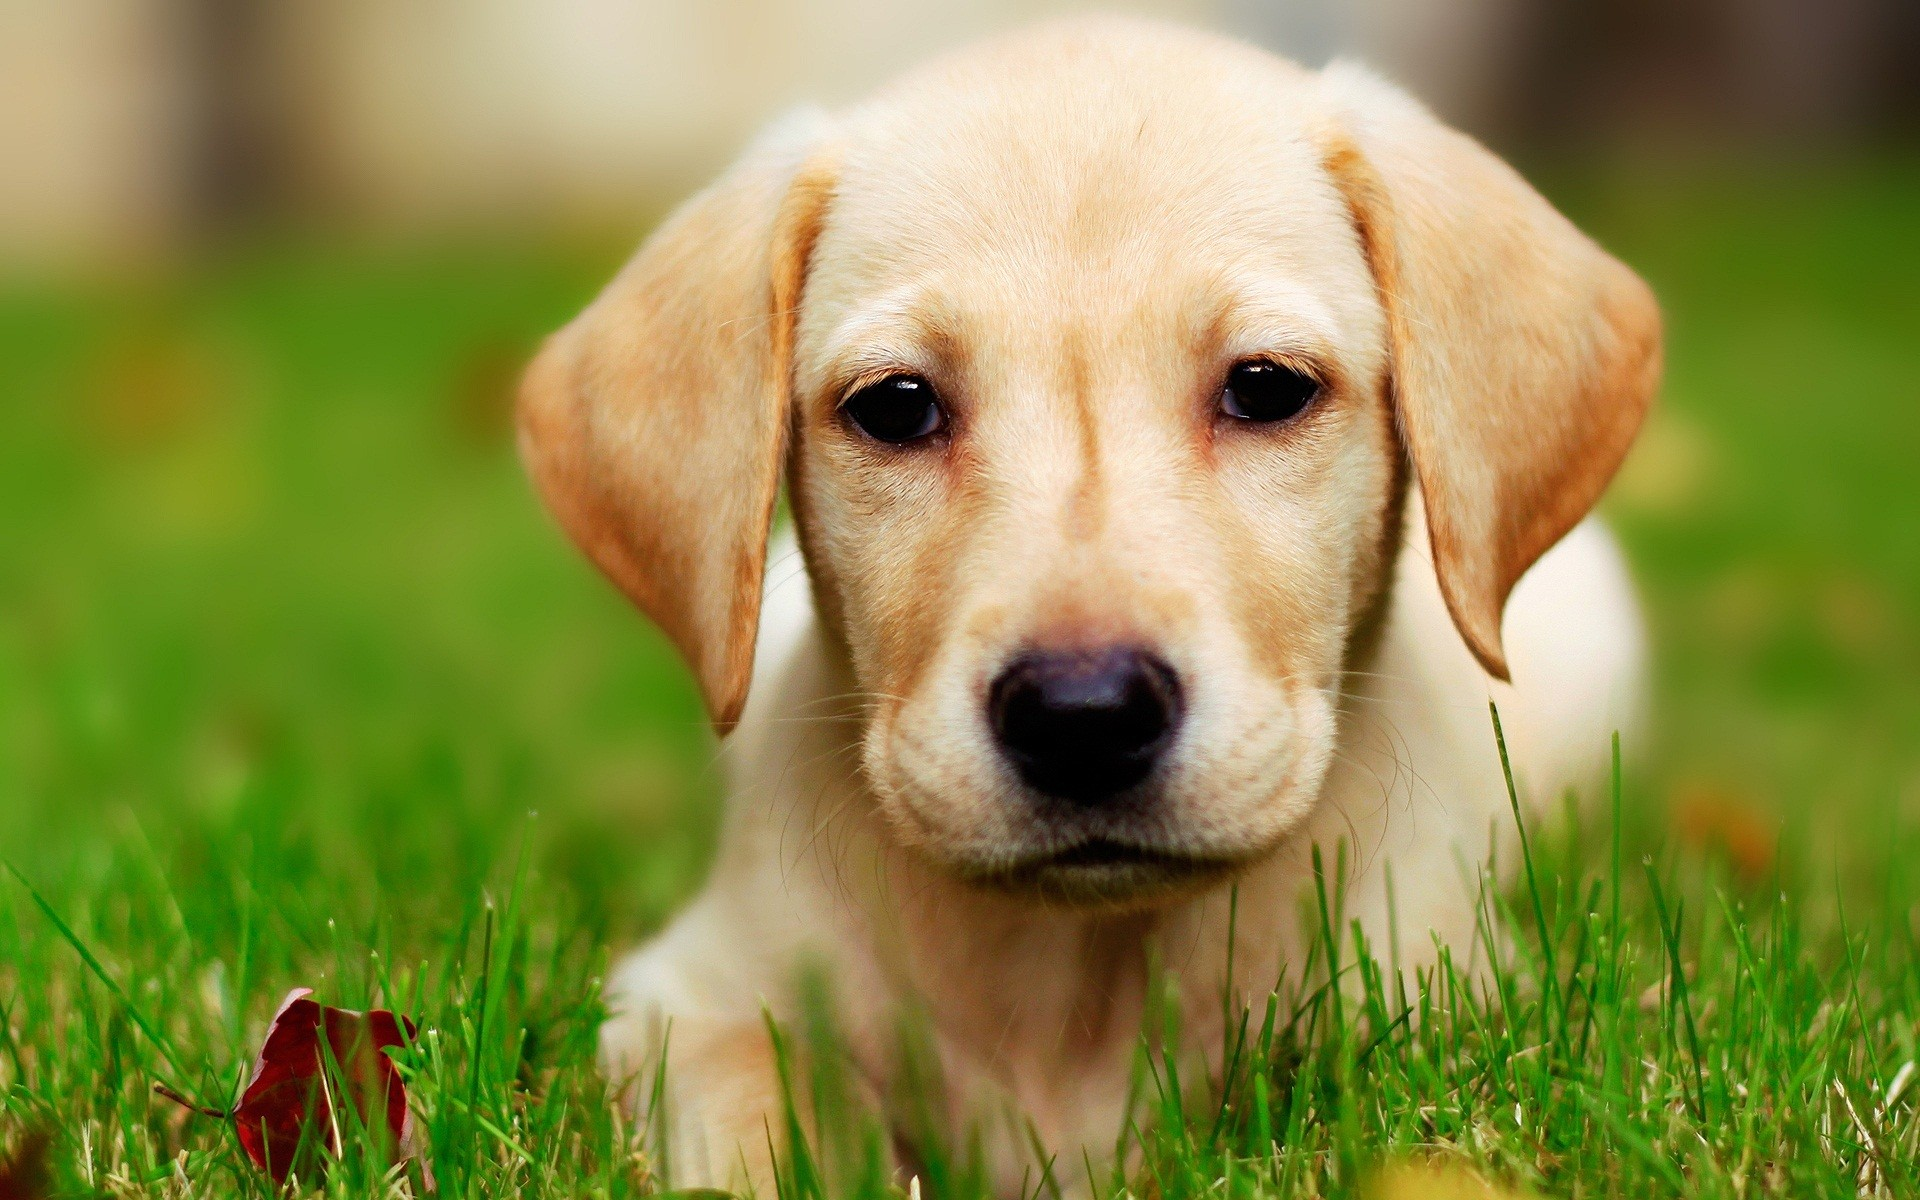 Eyes yellow animals dogs labrador retriever wallpaper background 1920x1200